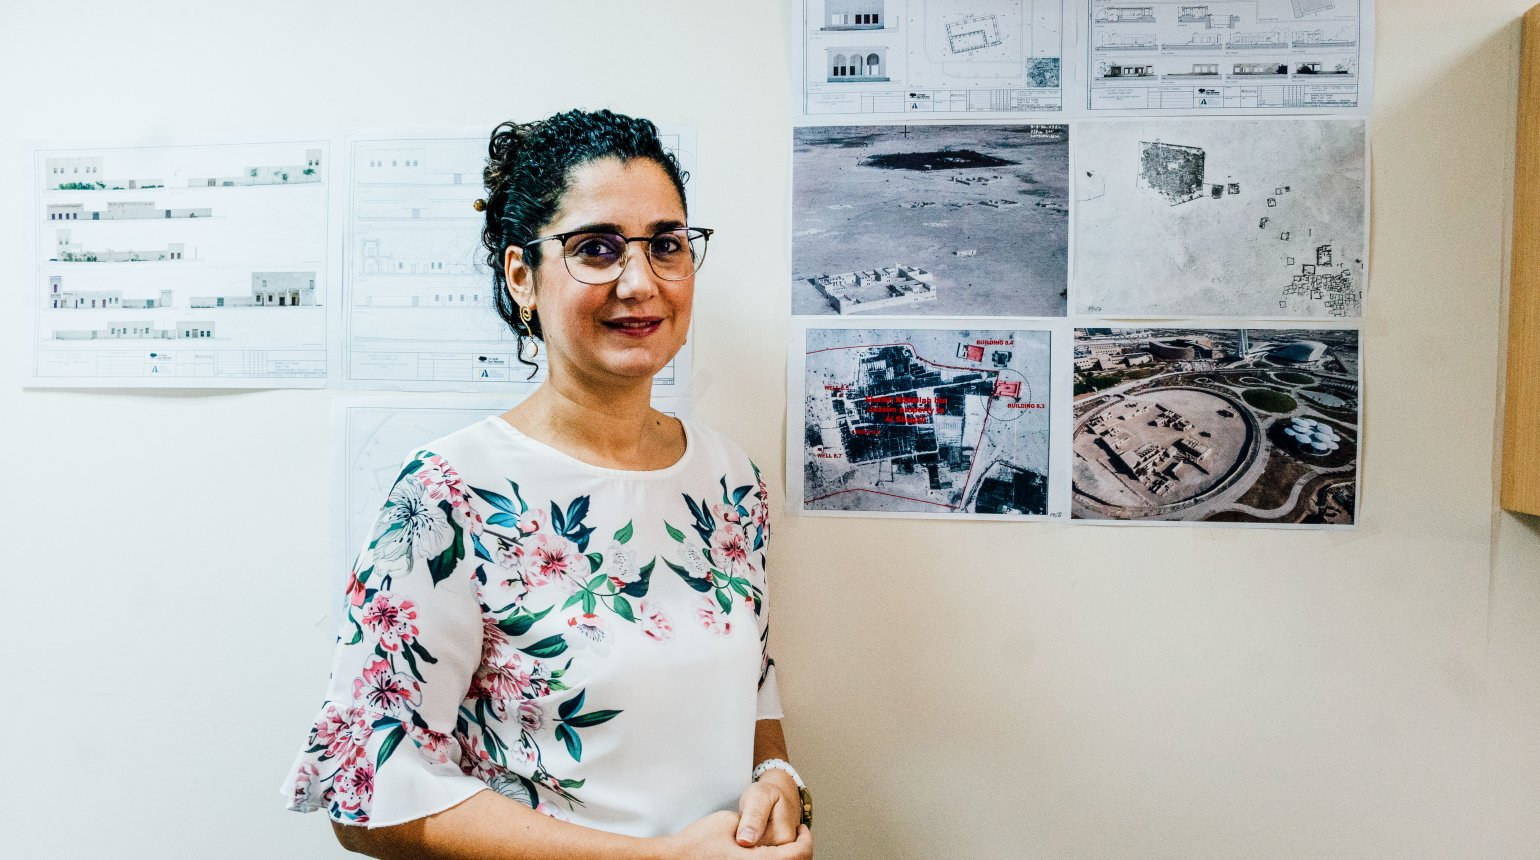 <p>Nur Alah Abdelzayed Valdeolmillos, a Senior Architect at QF's Capital Projects Directorate</p>